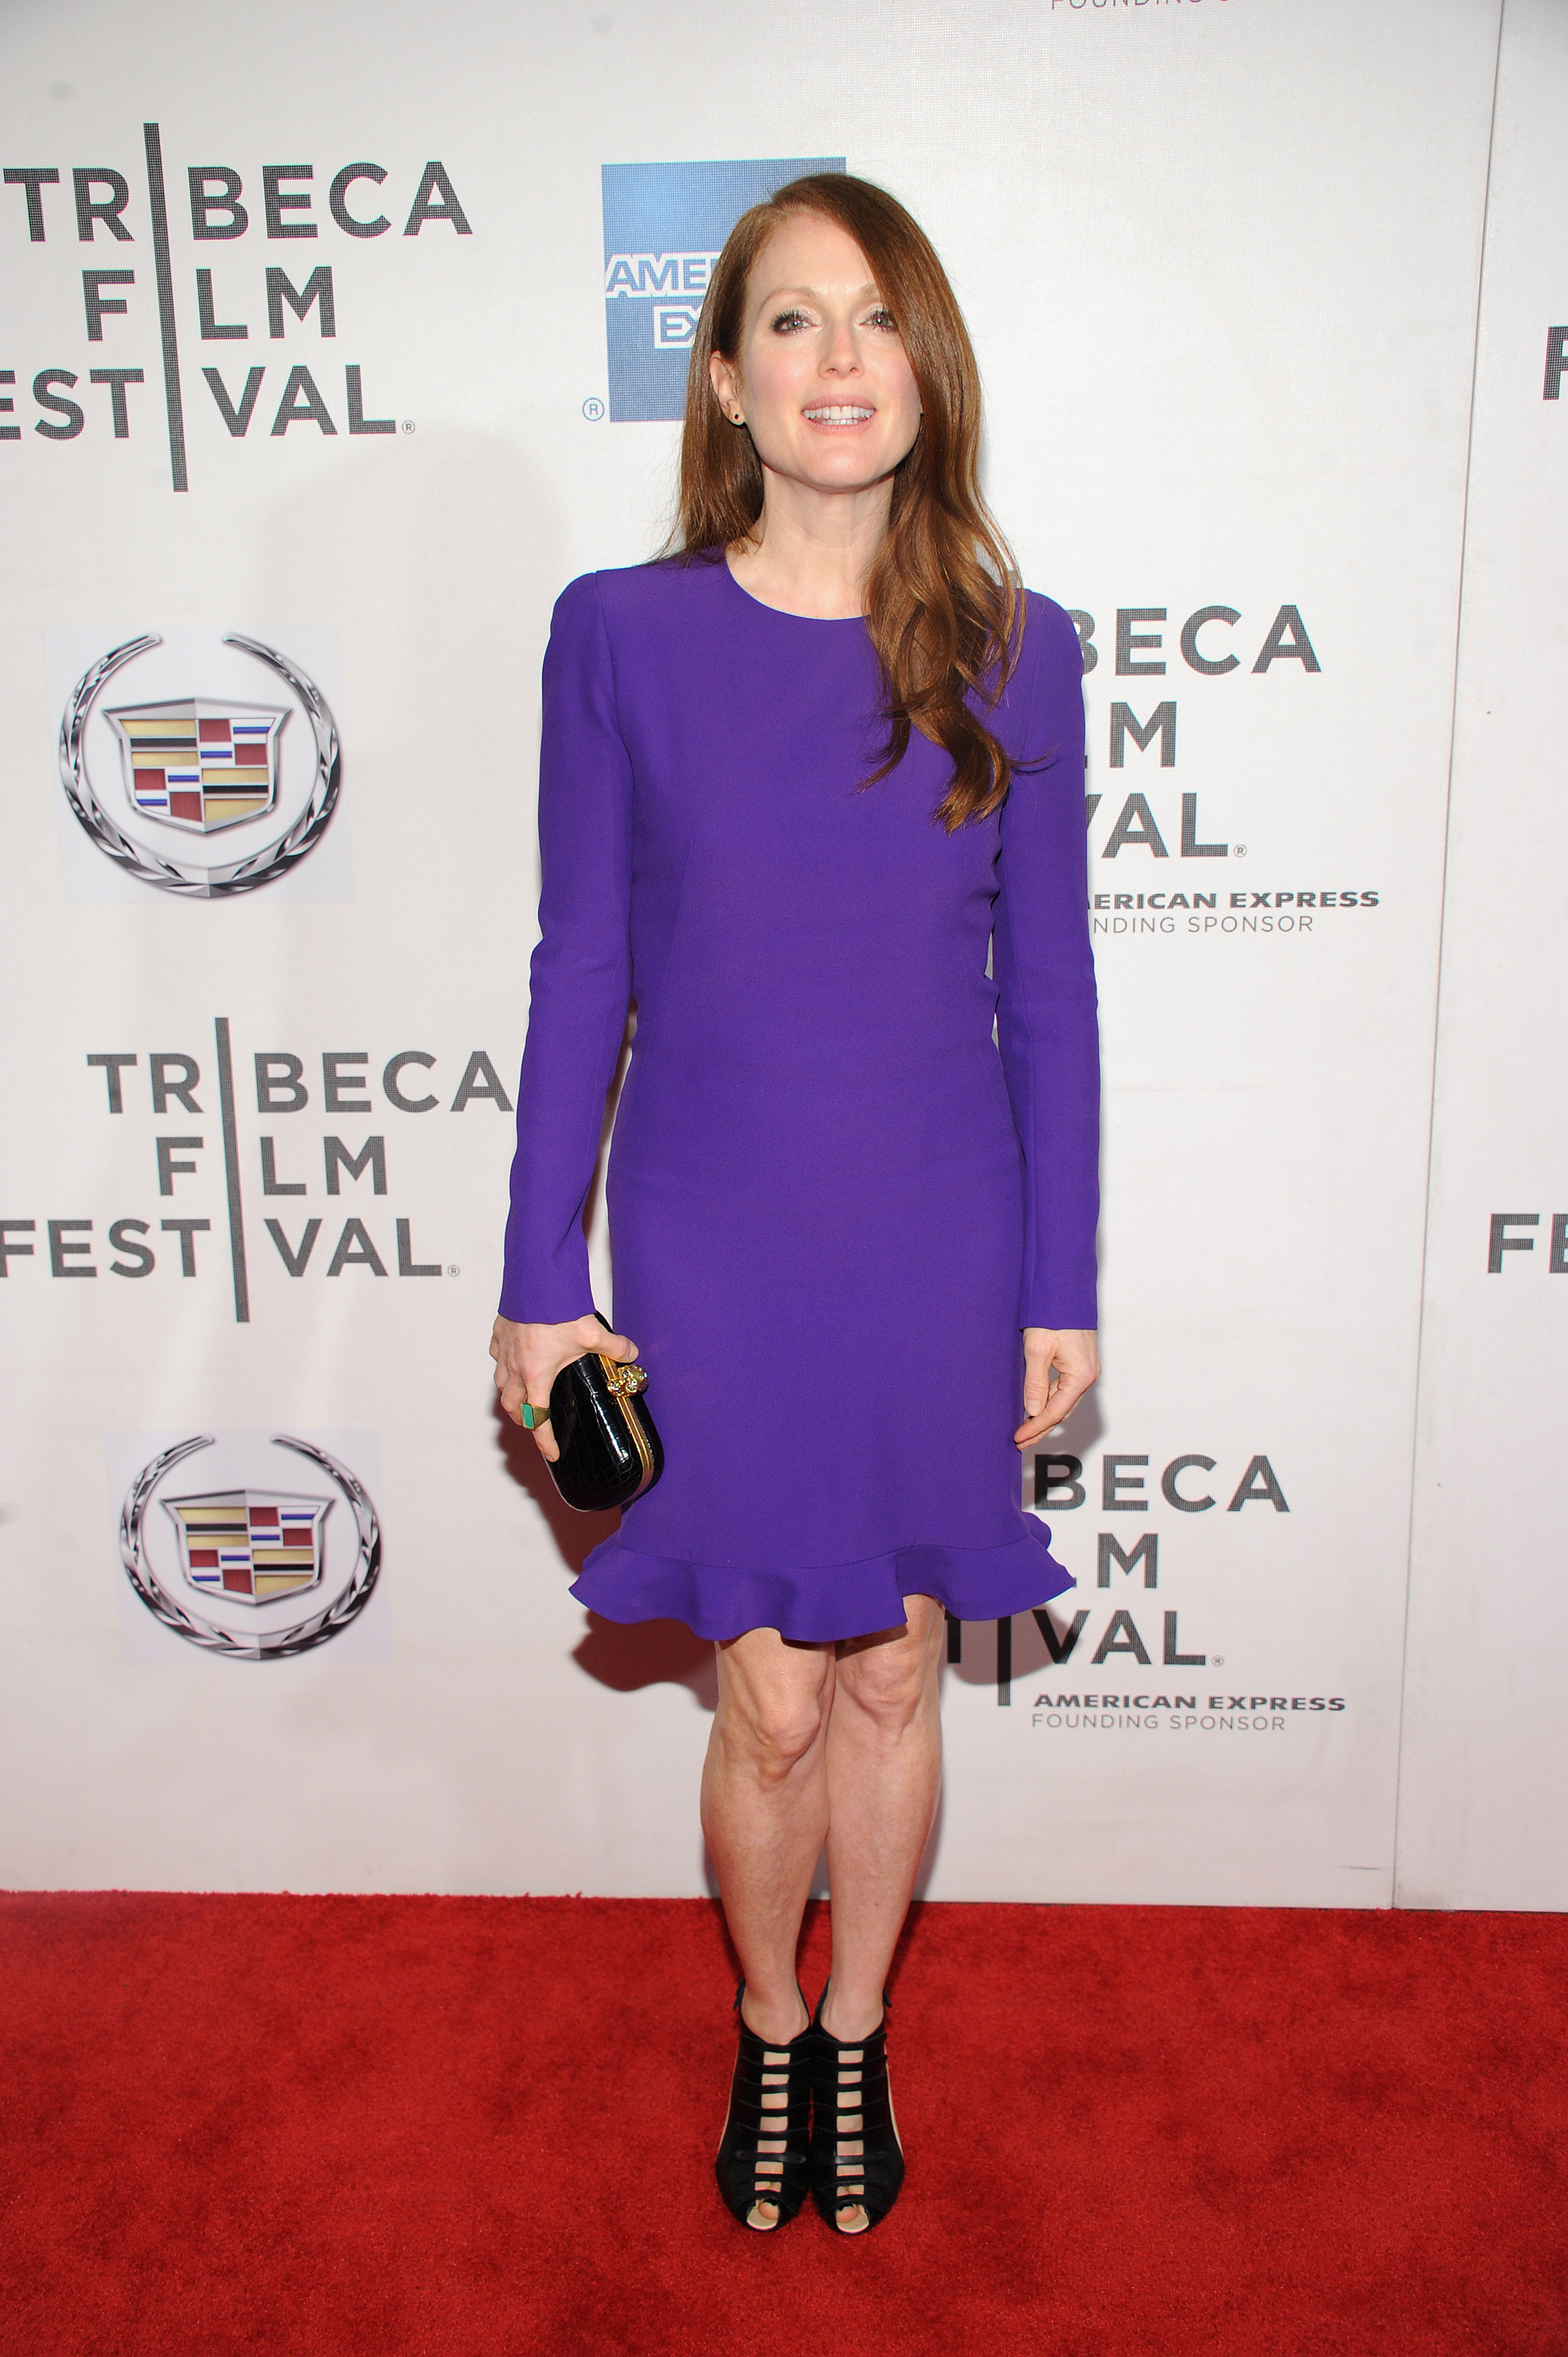 Julianne Moore stunned in purple for